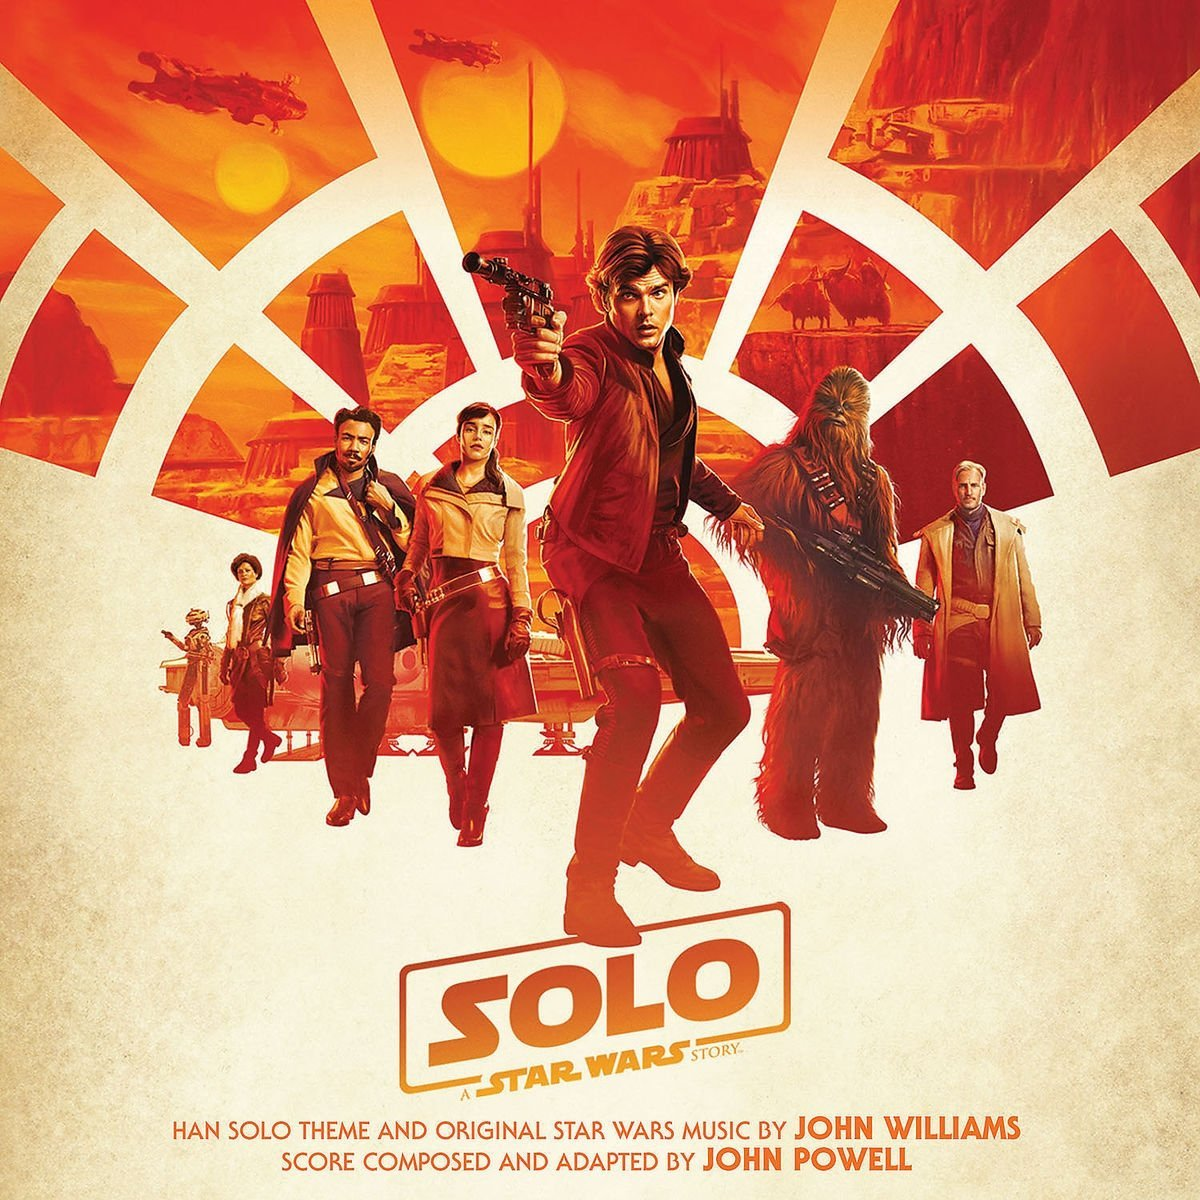 Solo-A-Star-Wars-Story-Soundtrack-Cover